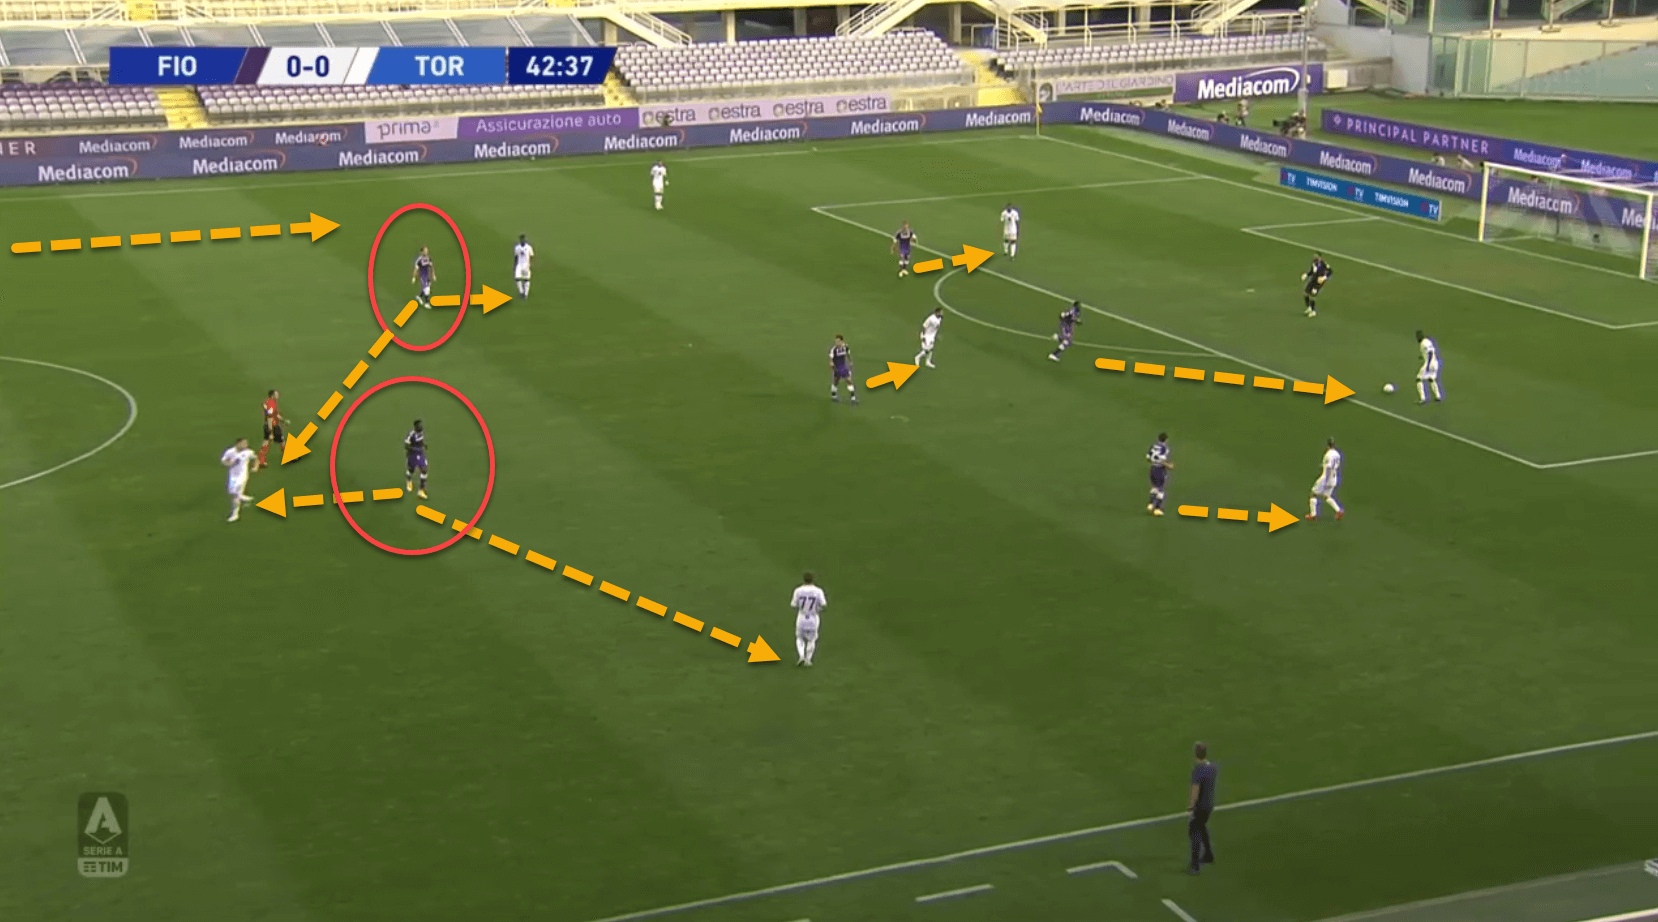 Serie A 2020/21: Fiorentina vs Torino – tactical analysis tactics